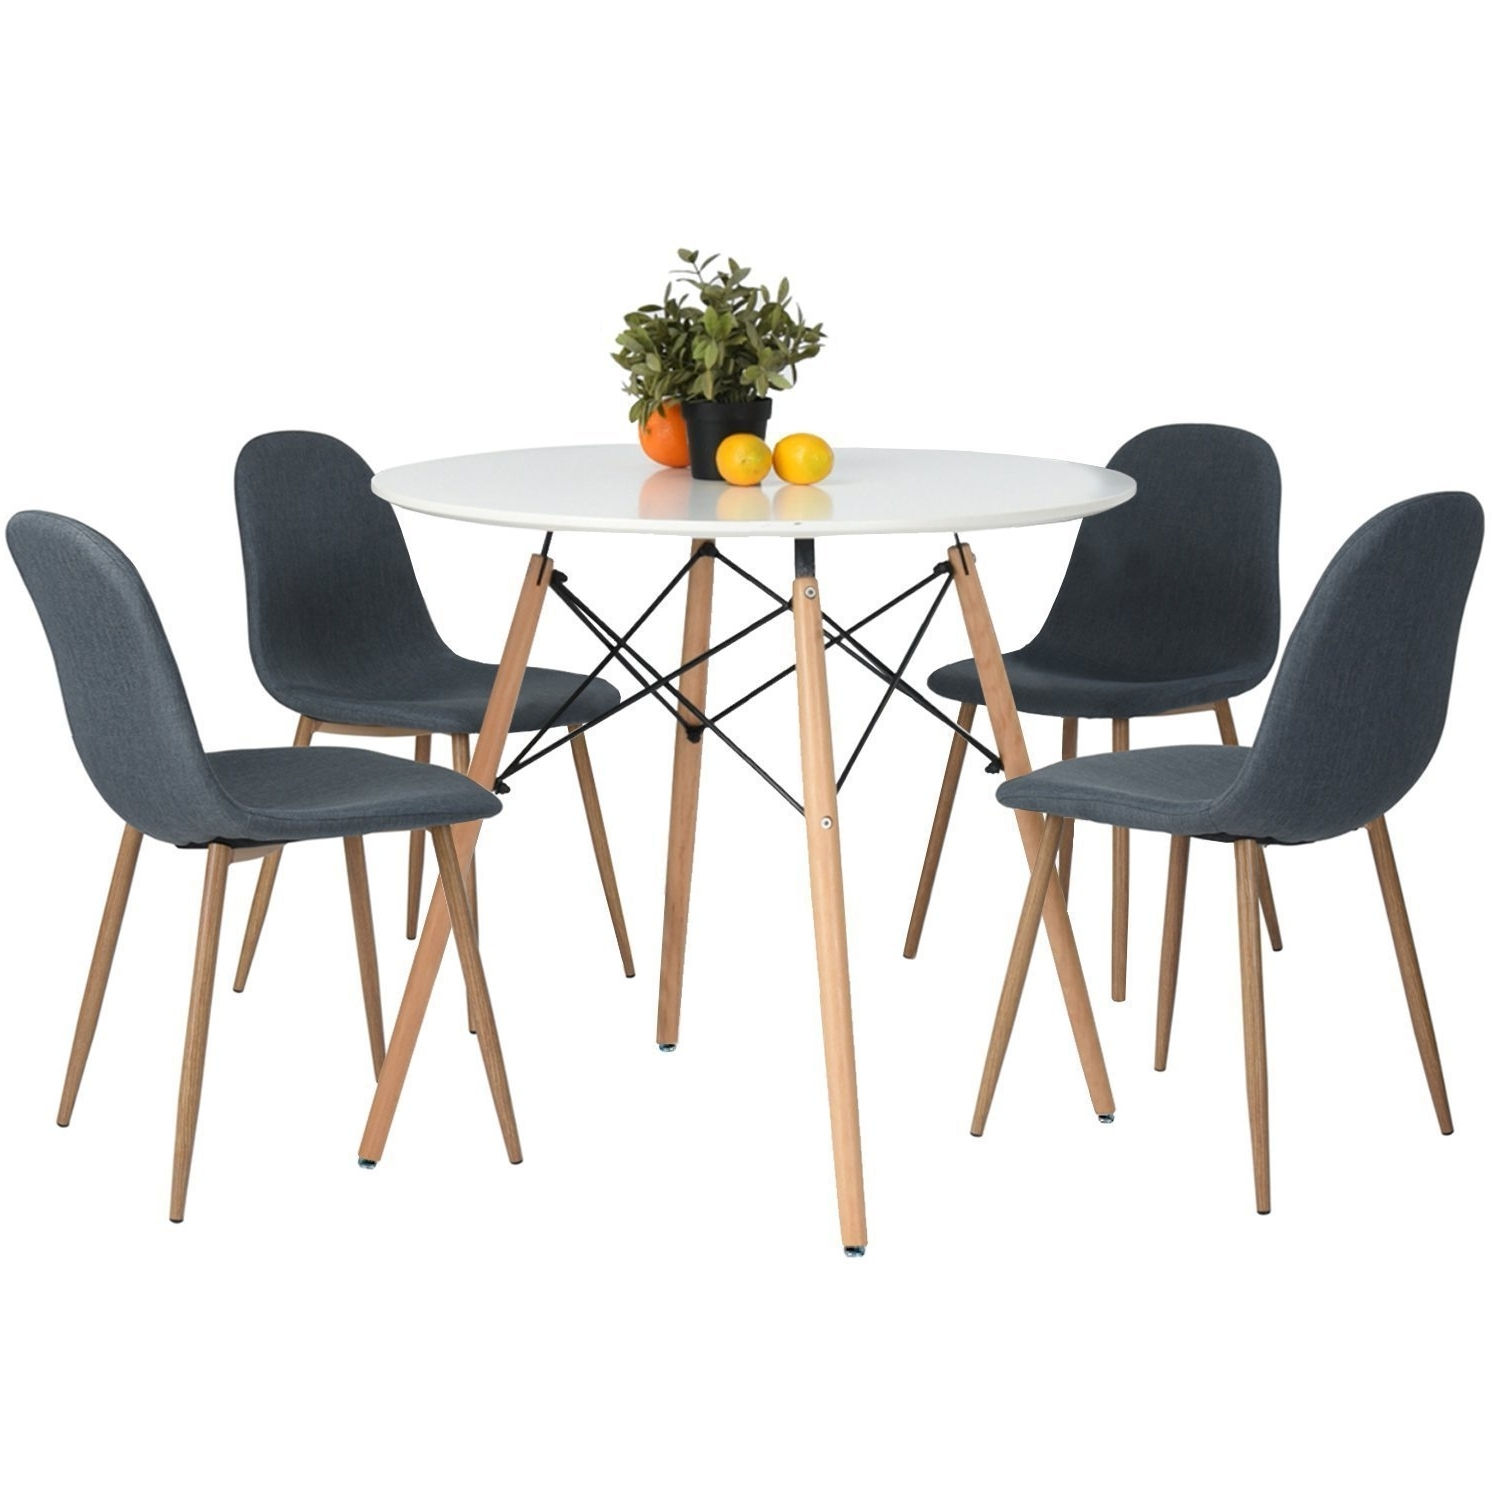 Newest Vogue Dining Tables Regarding Eames Kitchen Dining Table Vogue Carpenter Round Coffee Tea Table (View 10 of 25)